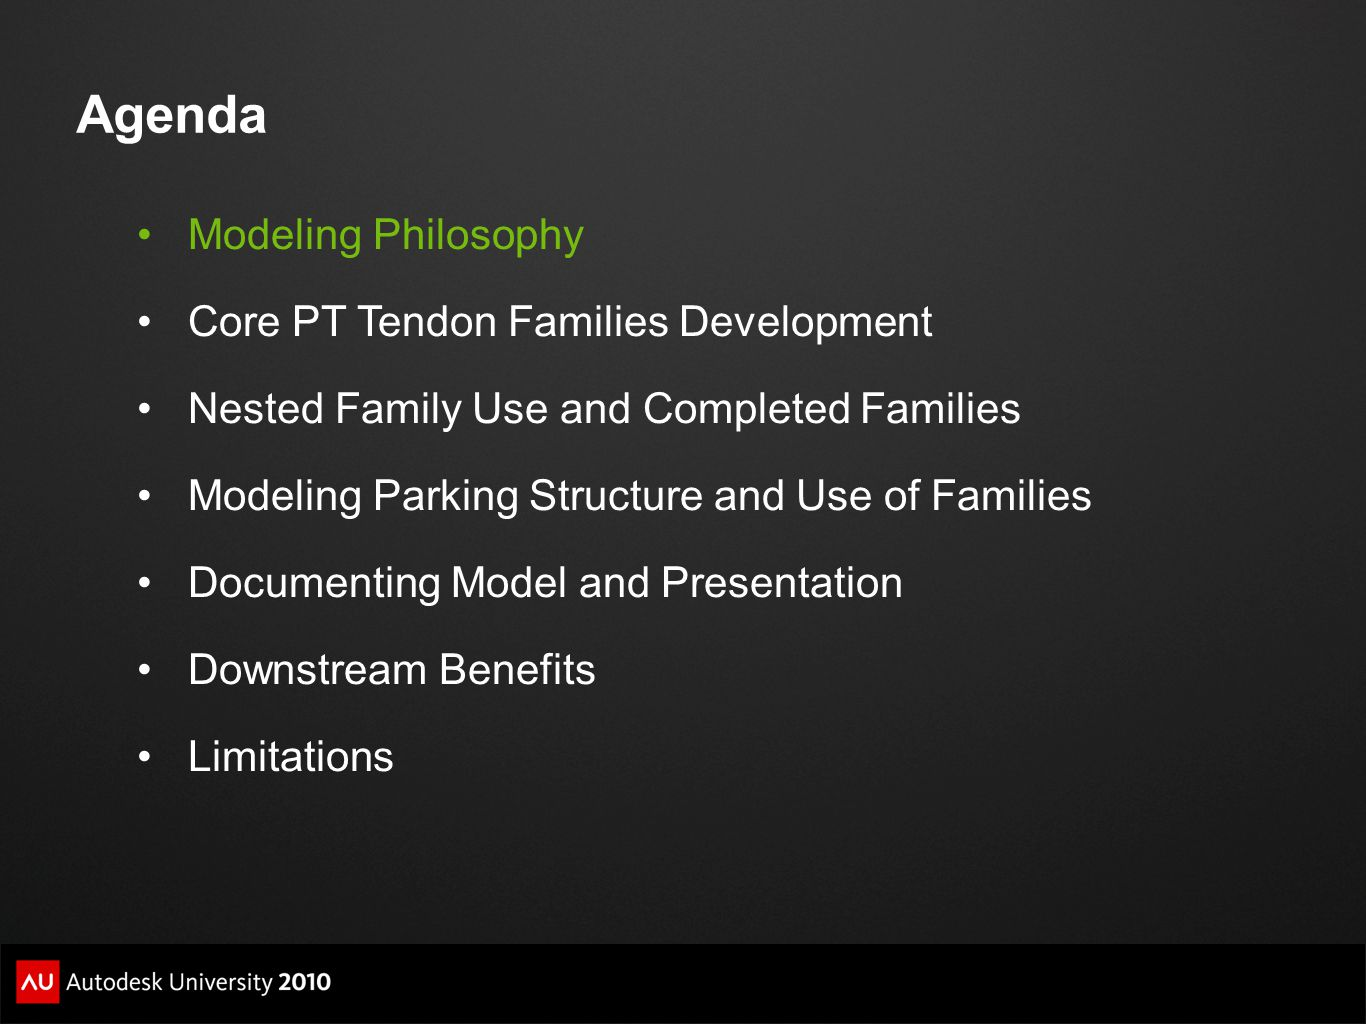 Agenda Modeling Philosophy Core PT Tendon Families Development Nested Family Use and Completed Families Modeling Parking Structure and Use of Families